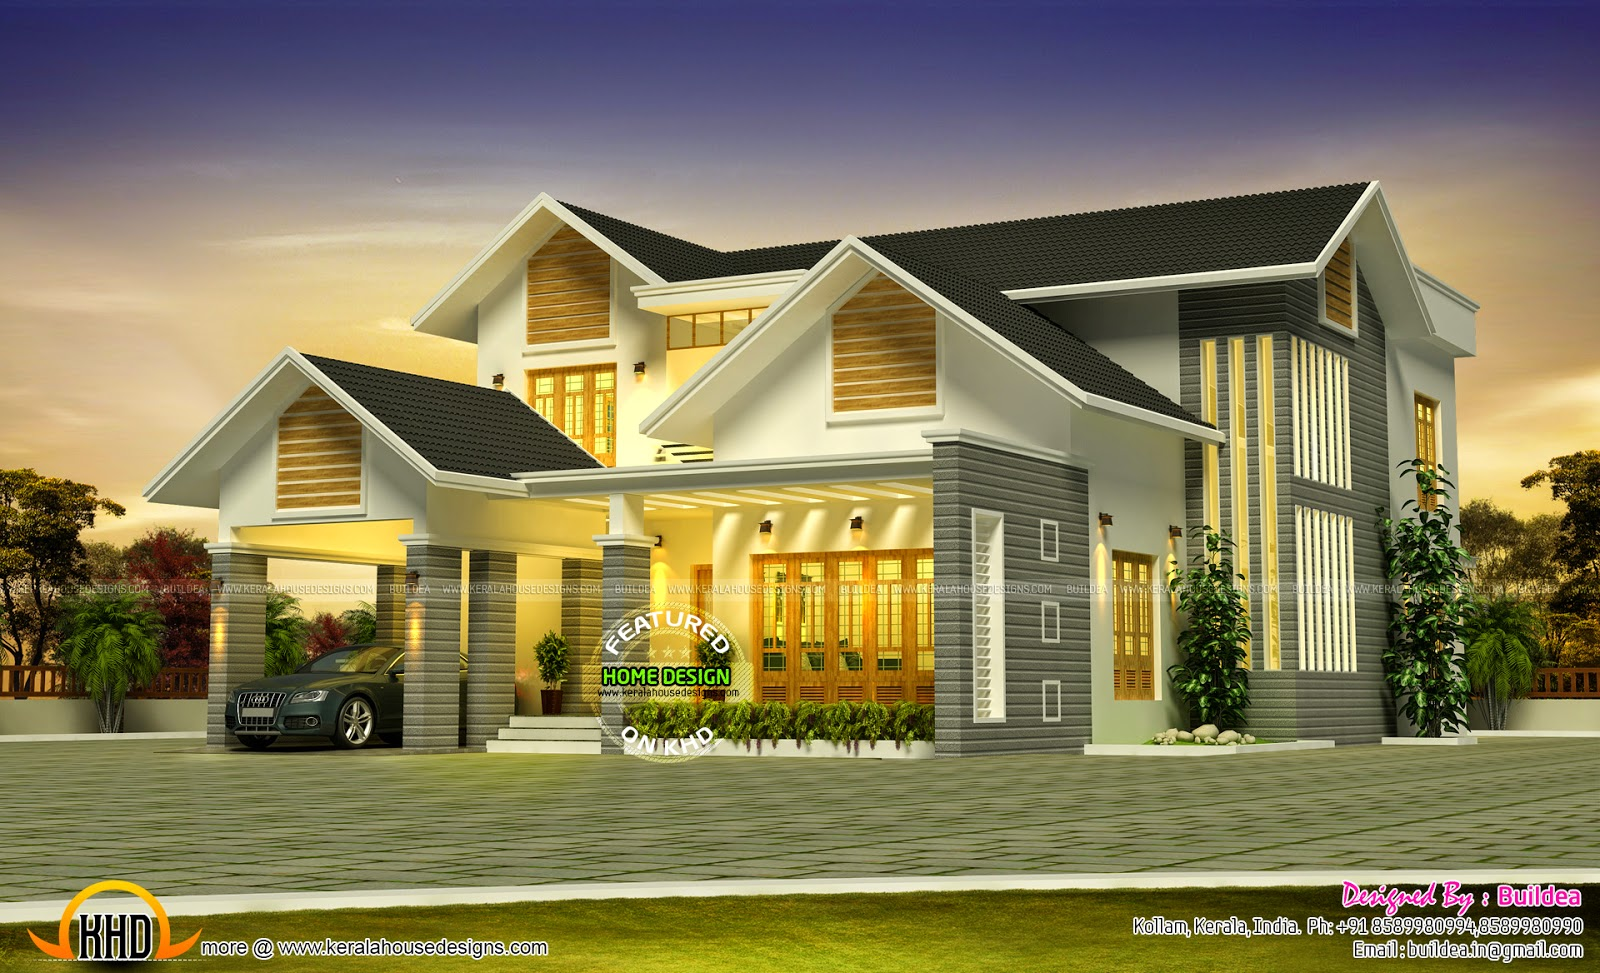 Grand house design kerala home design and floor plans for Designed home plans